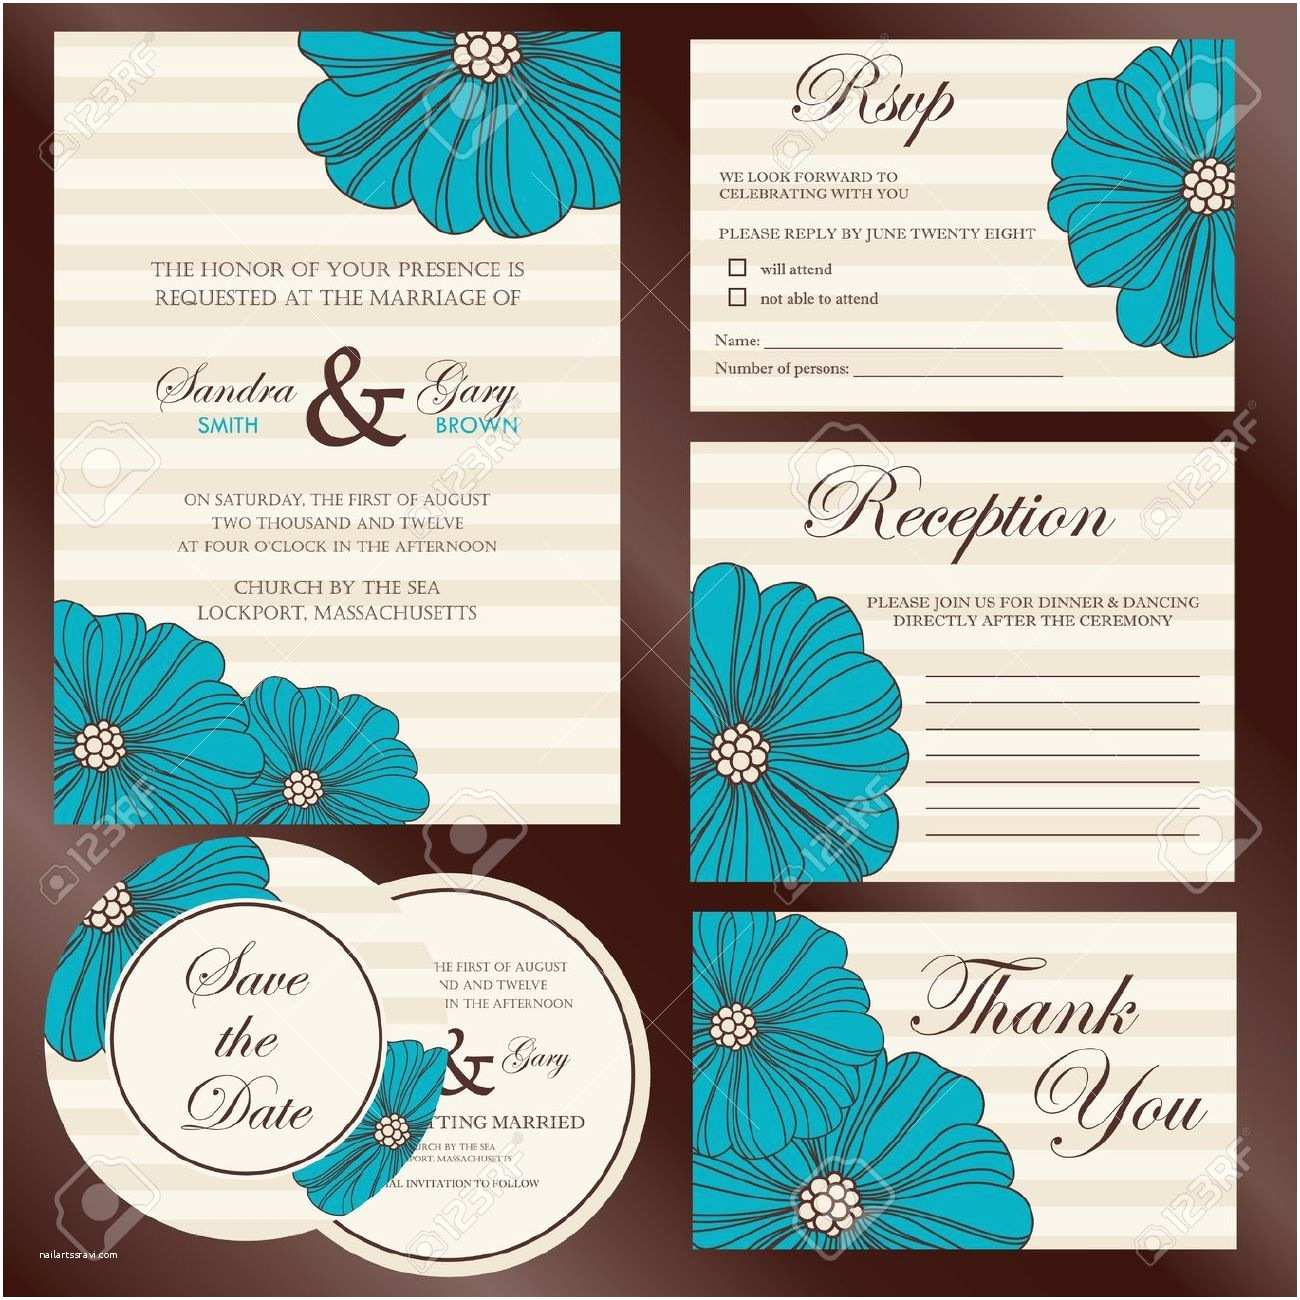 Wedding Invitations with Rsvp and Reception Cards Wedding Invitations with Rsvp and Reception Cards